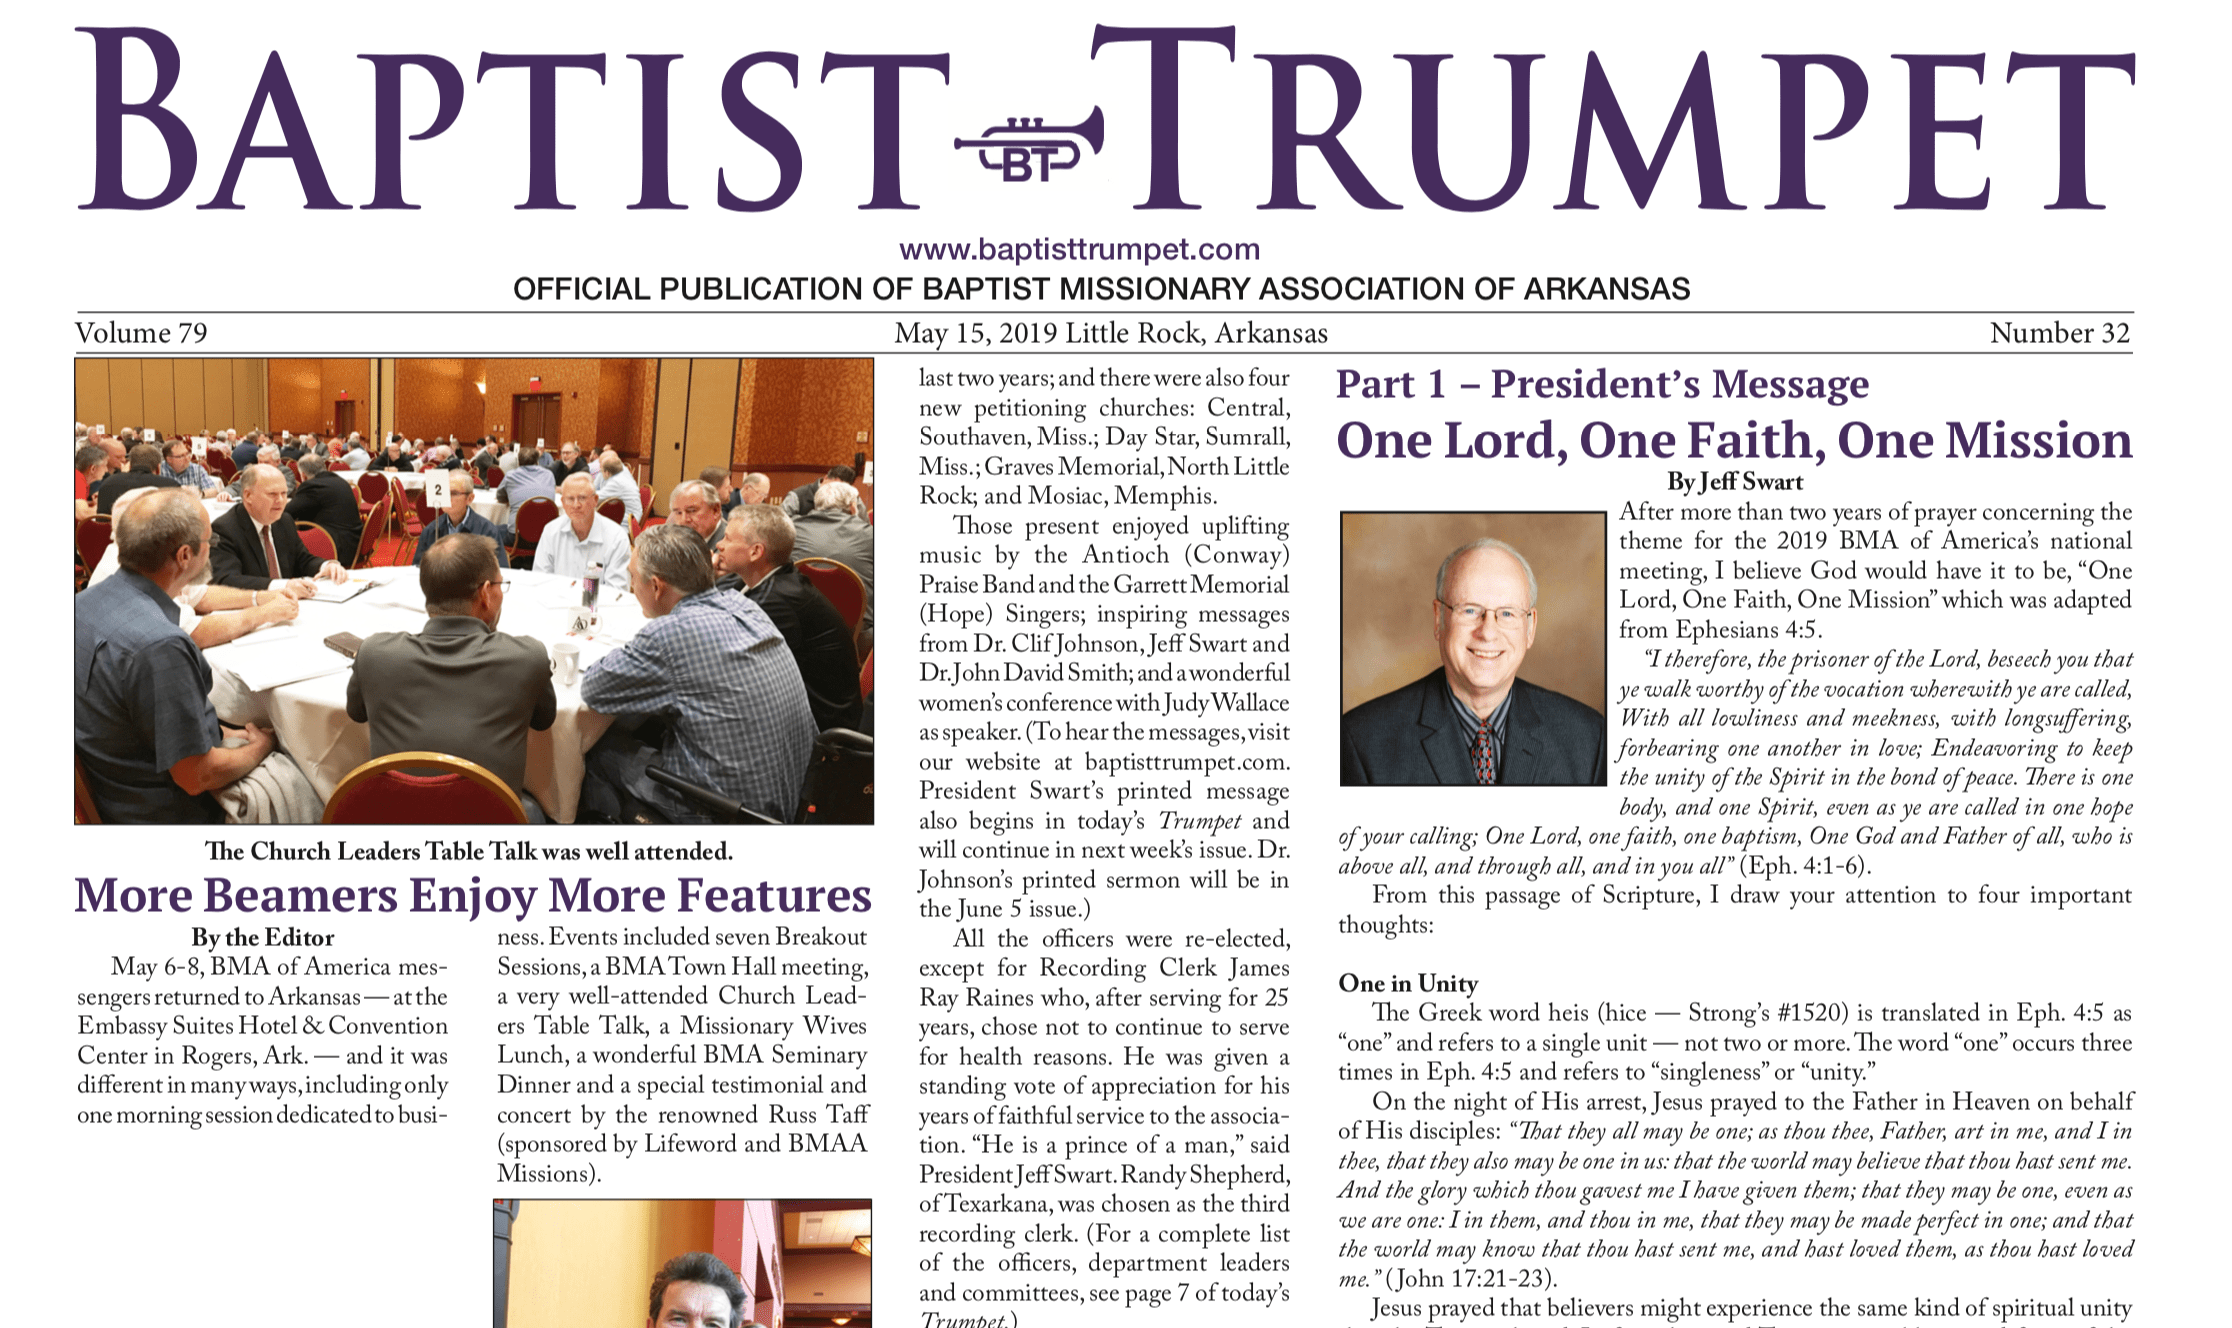 Exclusive look into the May 15, 2019 Issue!